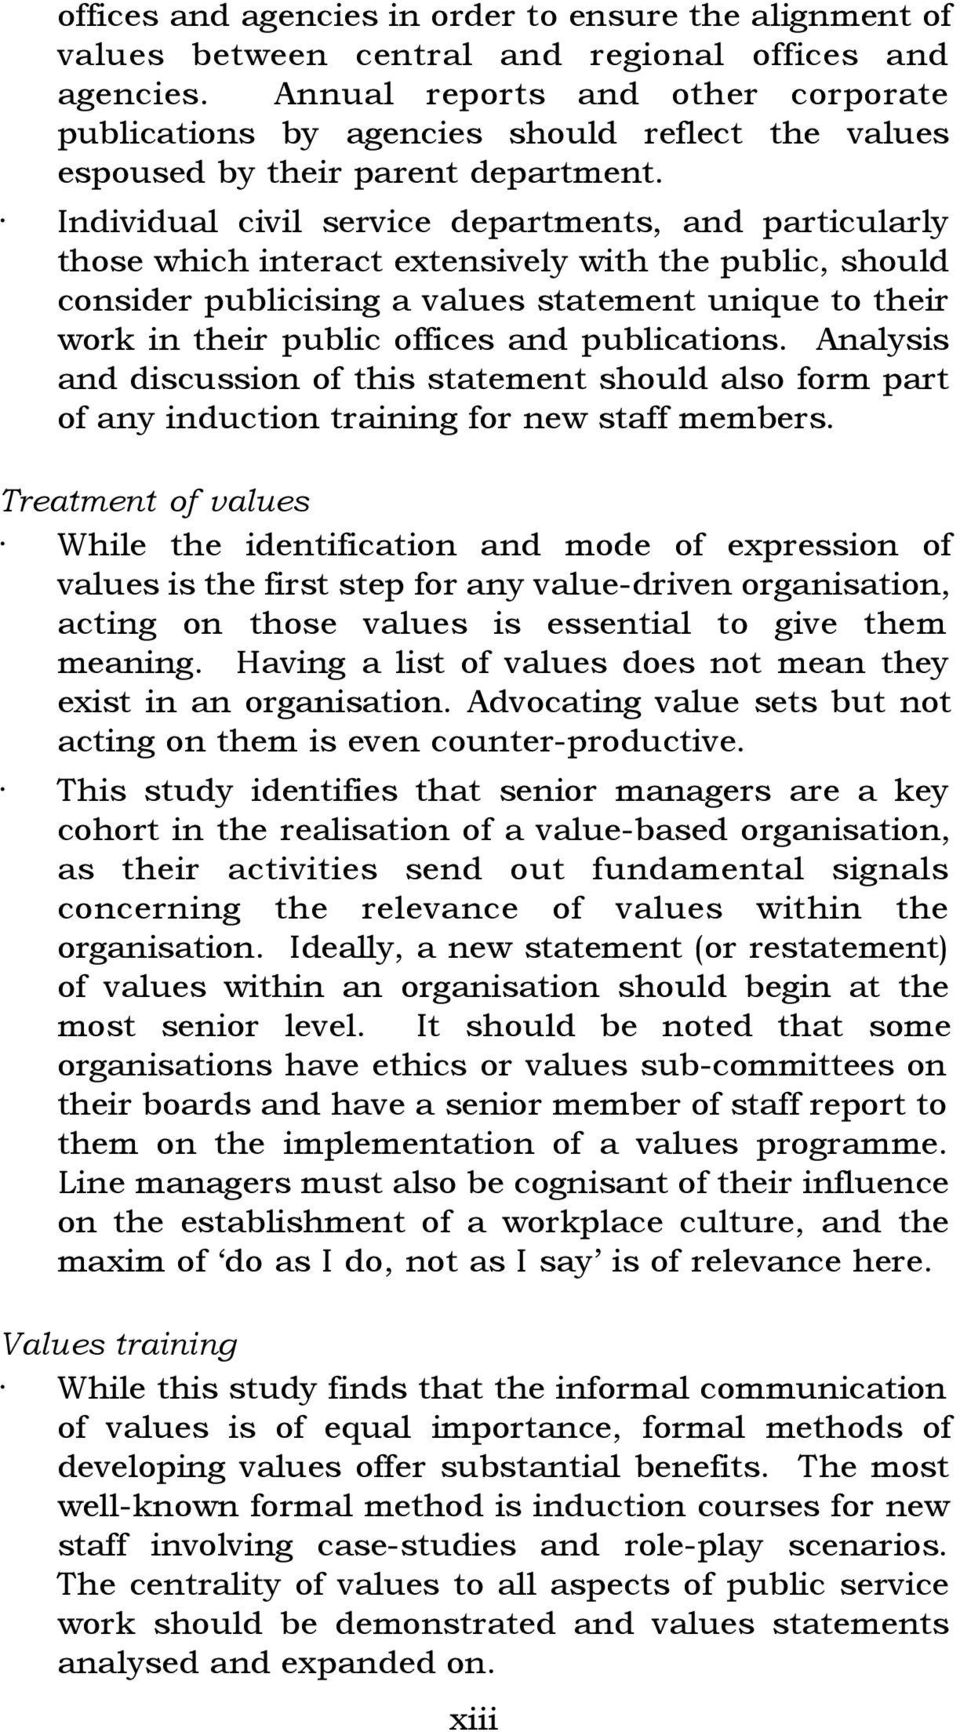 Individual civil service departments, and particularly those which interact extensively with the public, should consider publicising a values statement unique to their work in their public offices